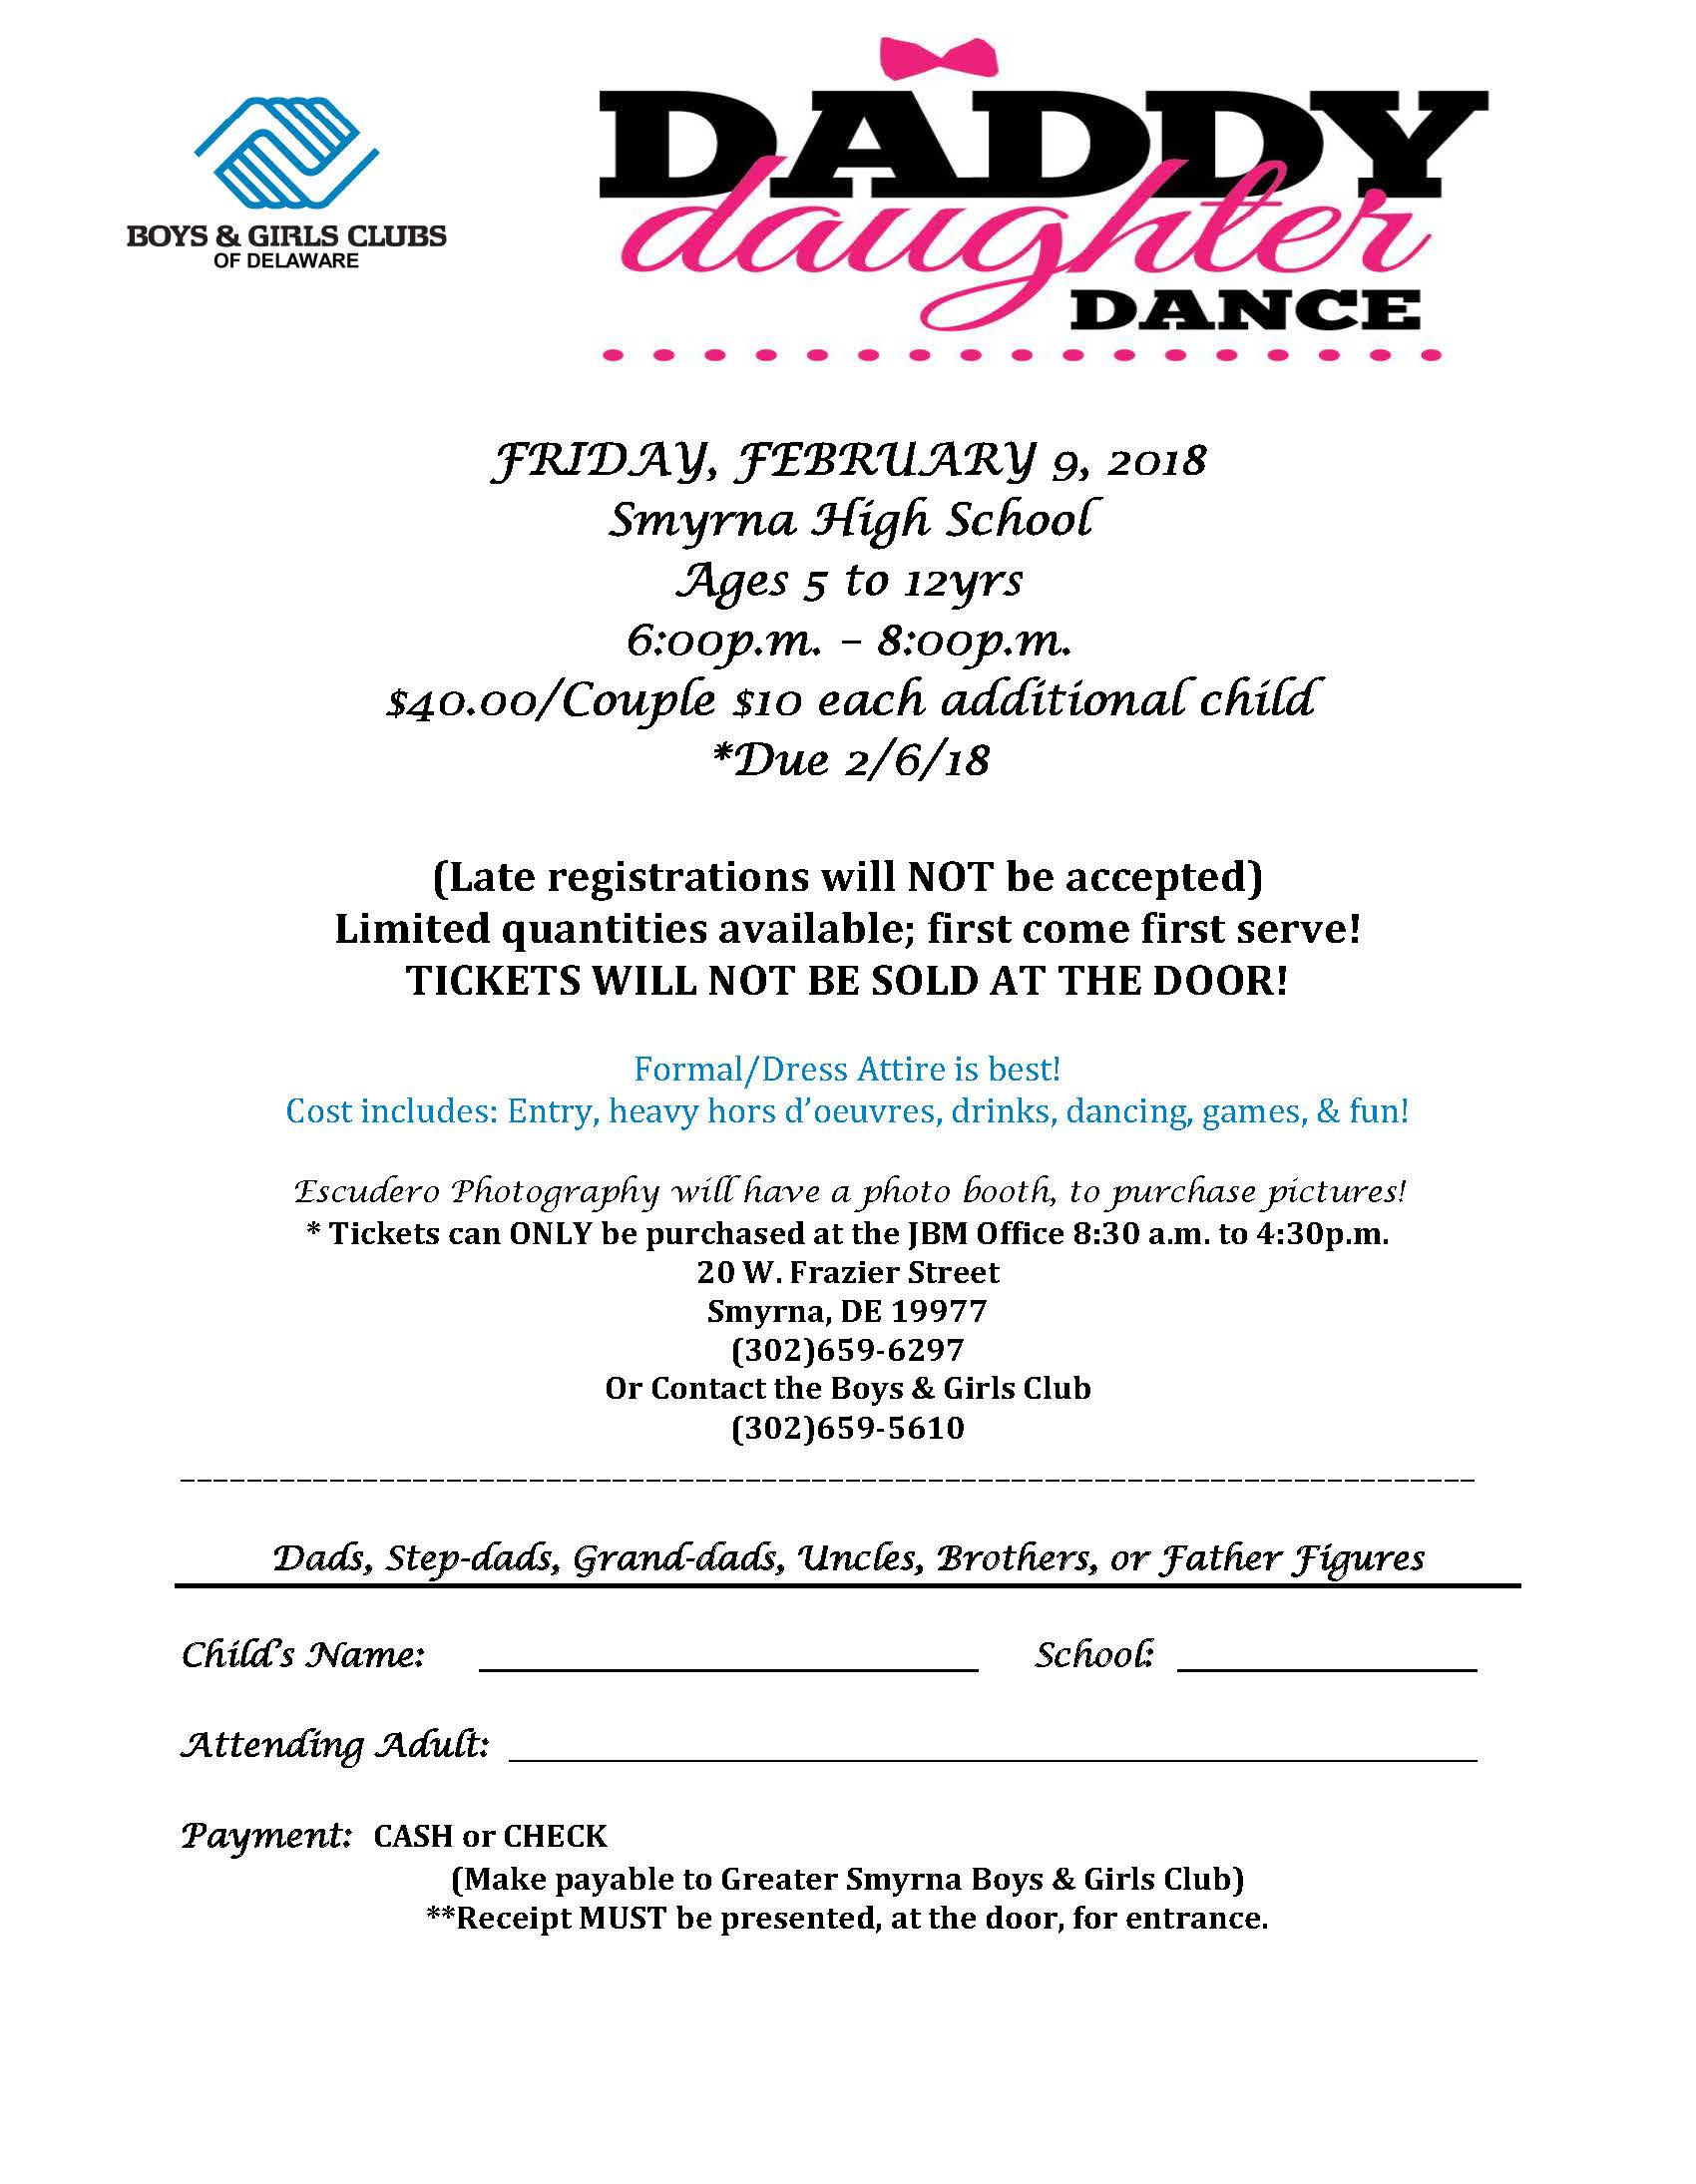 Greater Smyrna Annual Daddy-Daughter Dance